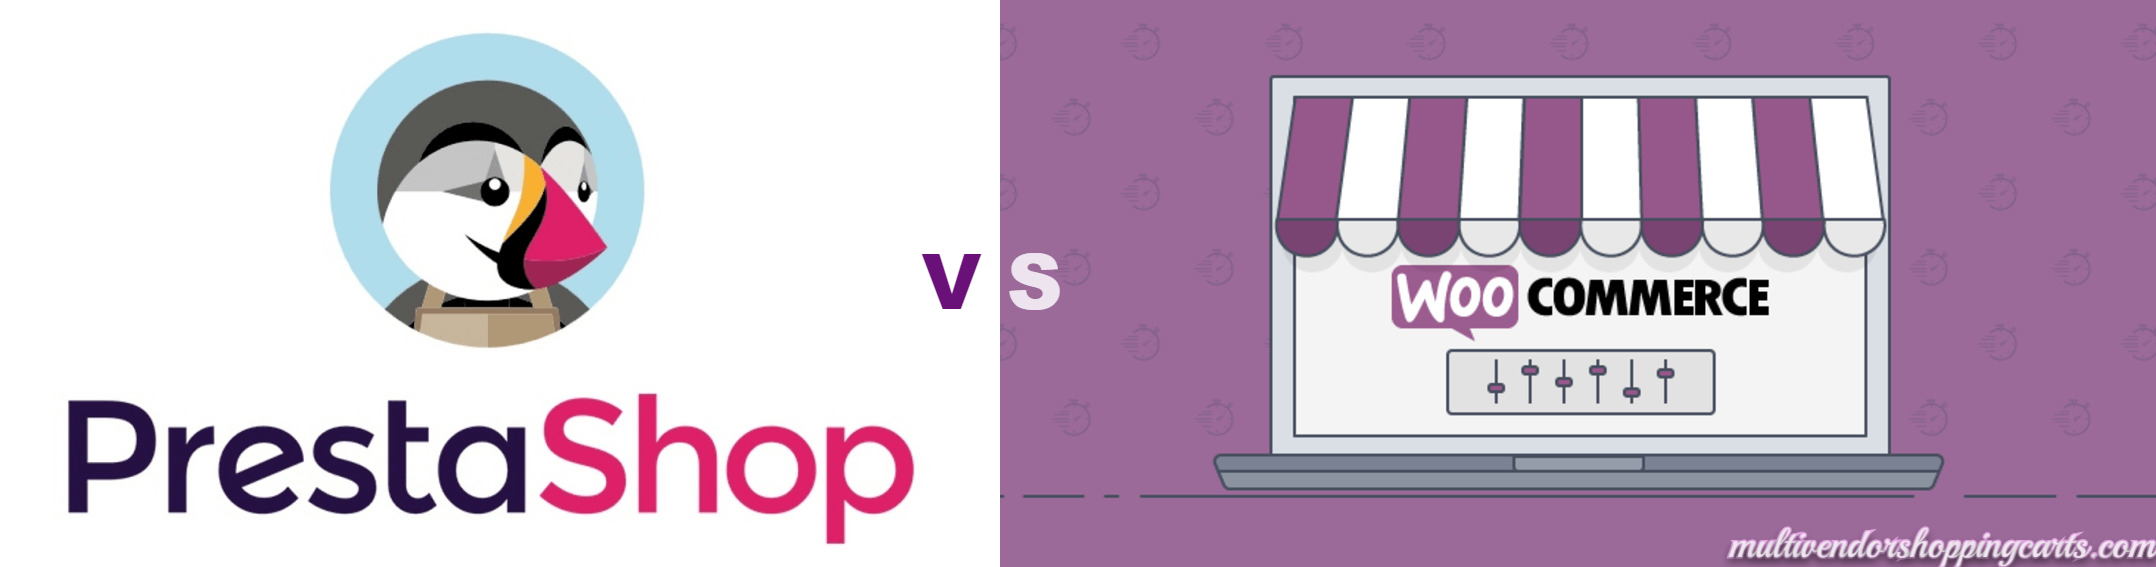 PrestaShop vs WooCommerce: Details Comparison